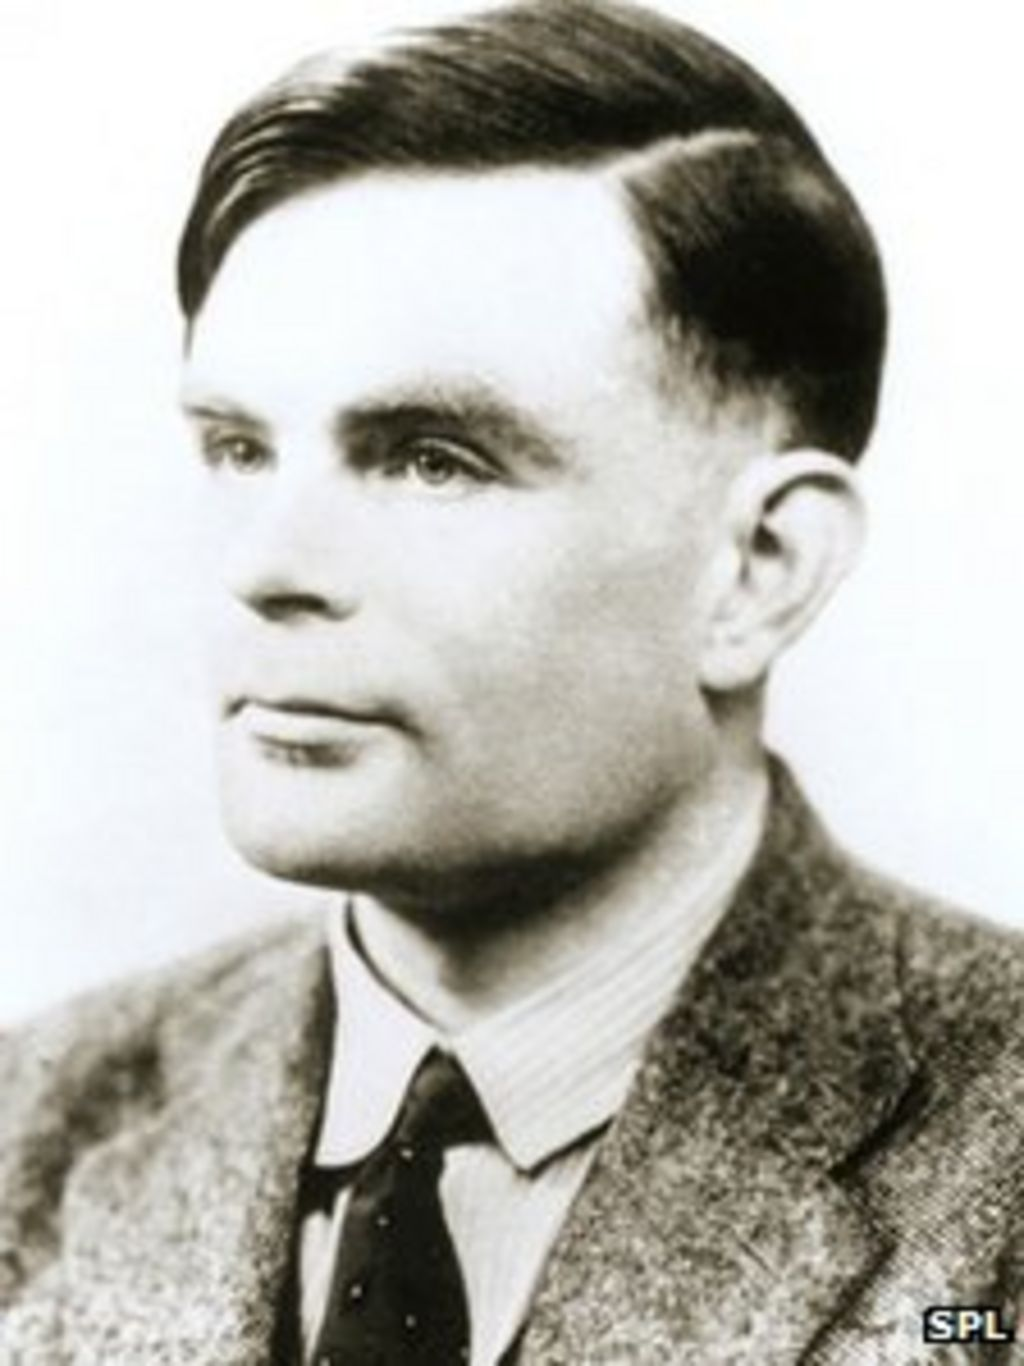 essays on alan turing Titled the life and death(s) of alan turing, the opera is a historical fantasia on the life of turing in november 2014, the opera and several other artistic works inspired by turing's life were featured on studio 360  [233.